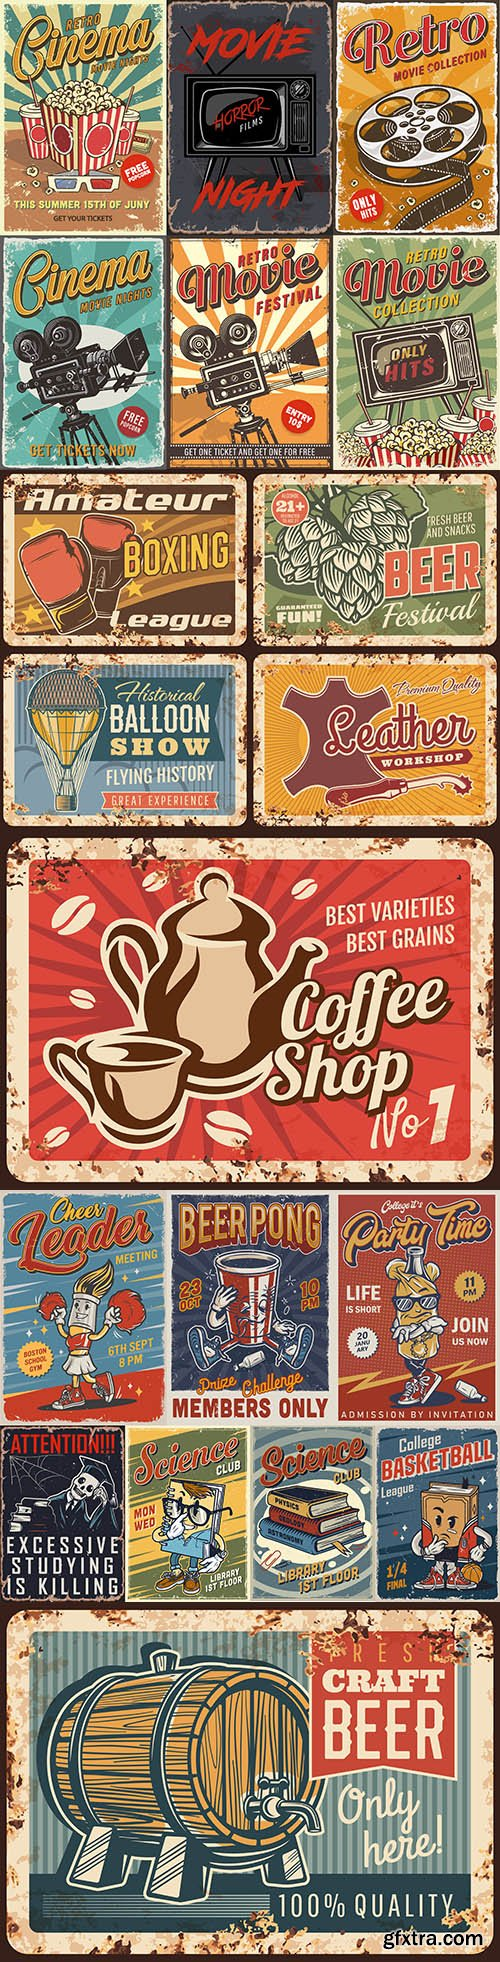 Retro signage design style rusty metal plate illustration